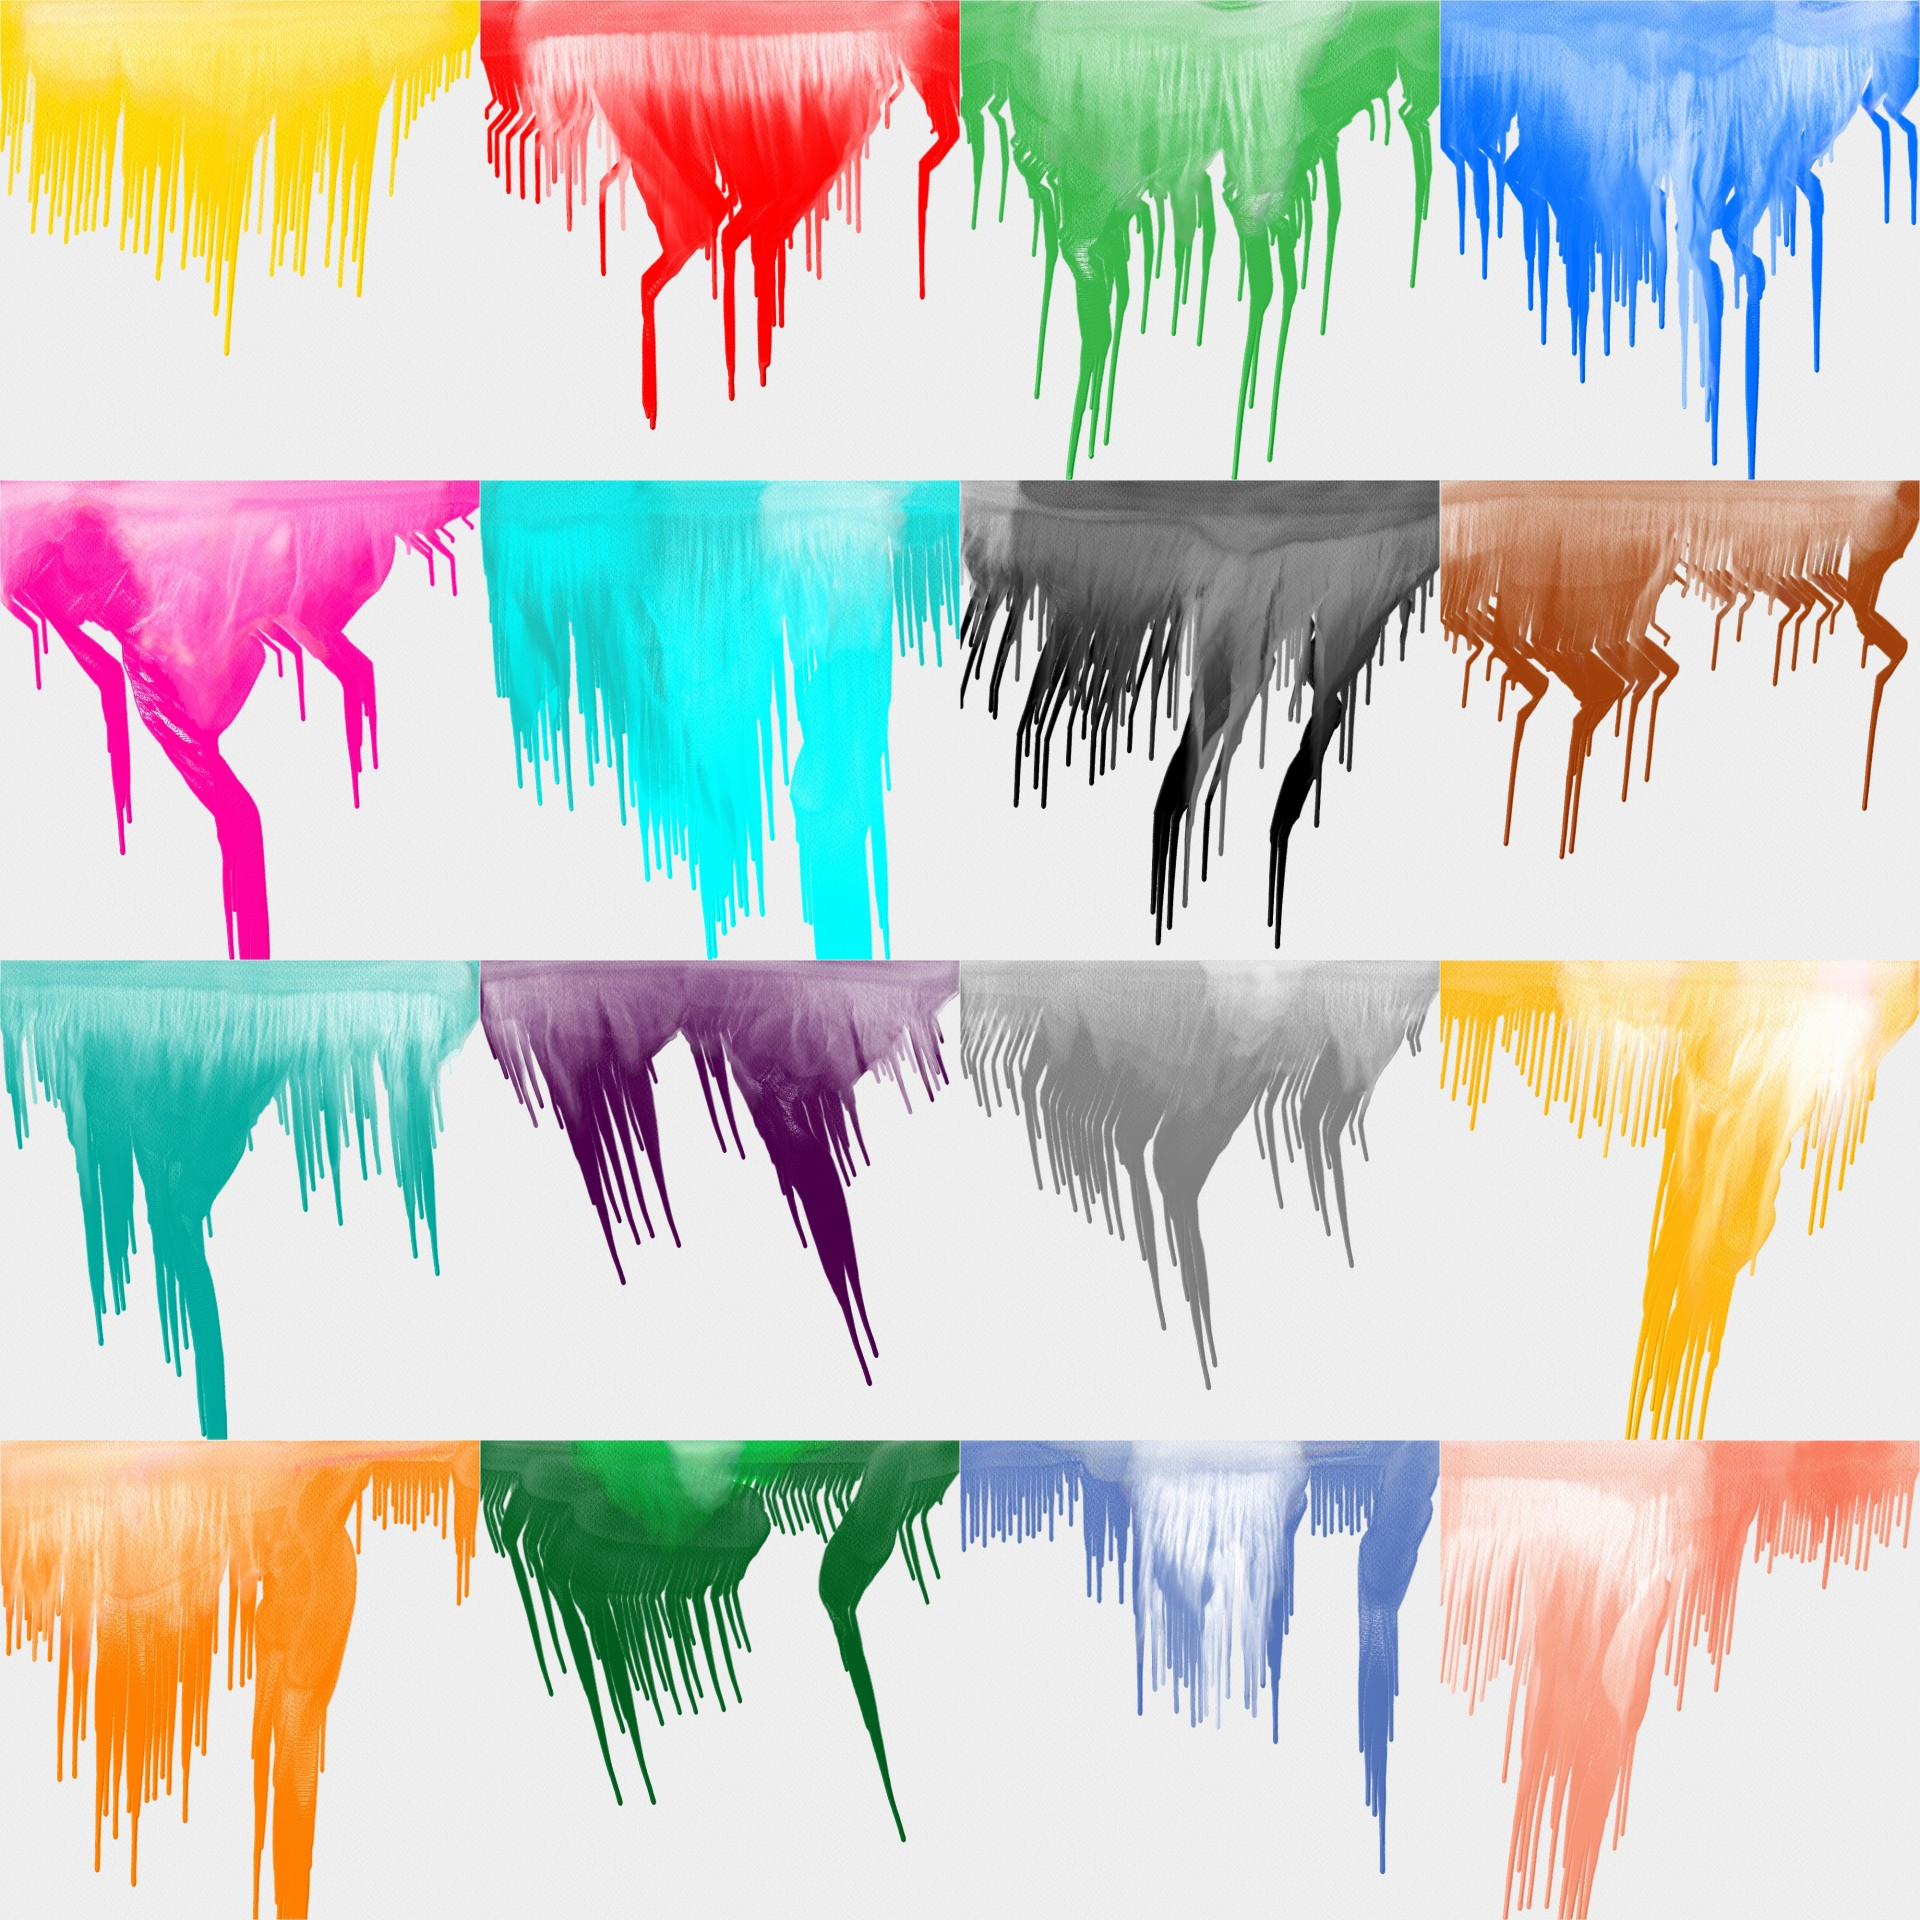 Paint Drips Free Stock Photo Public Domain Pictures